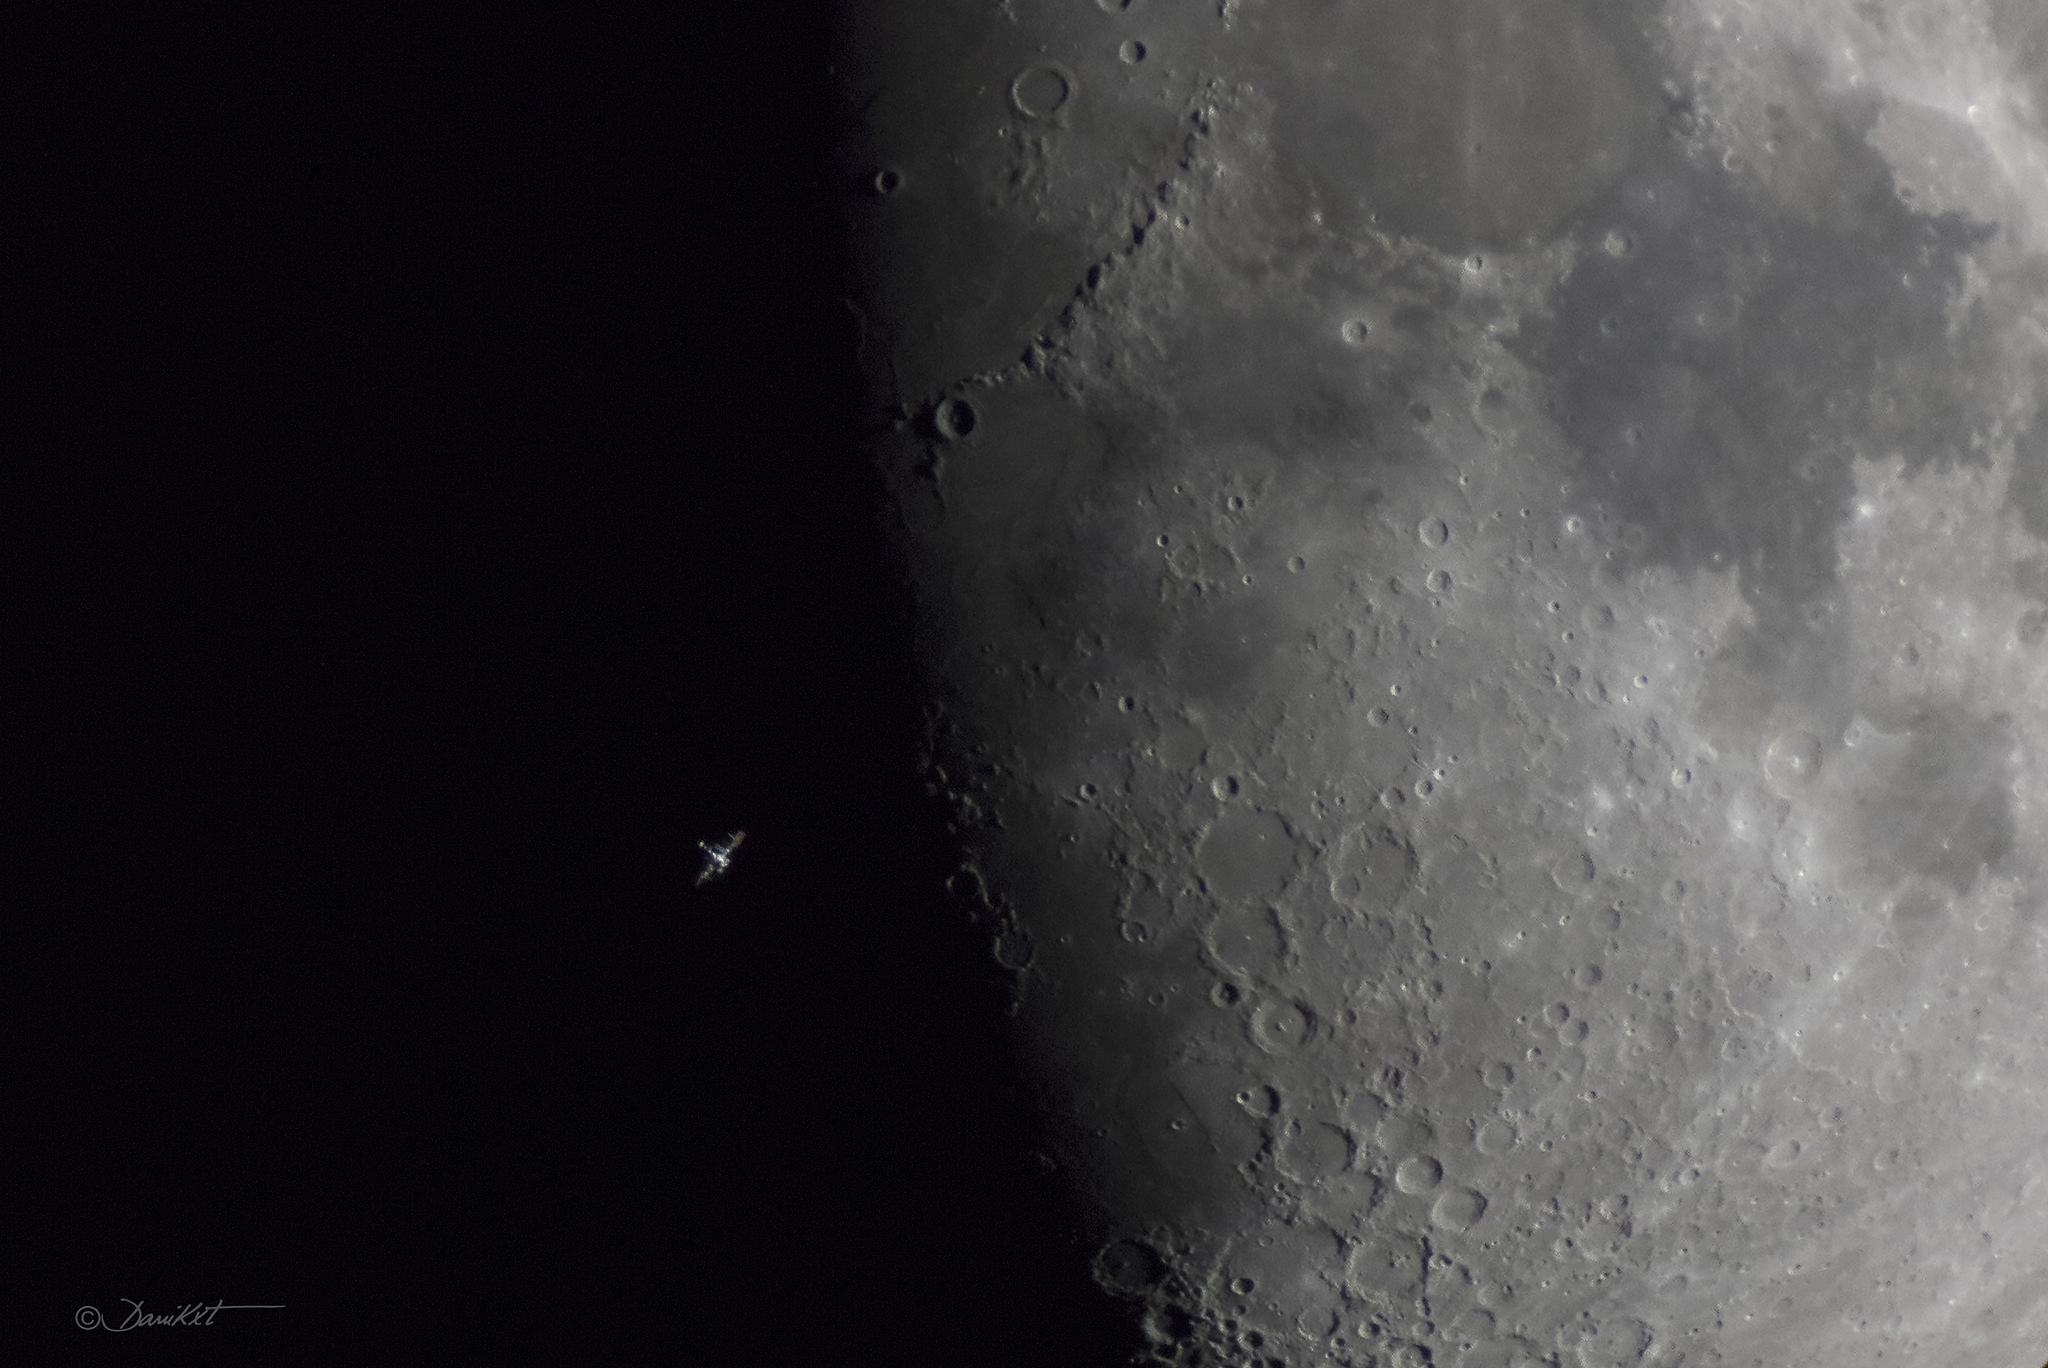 2015 April 27 - Space Station over Lunar Terminator